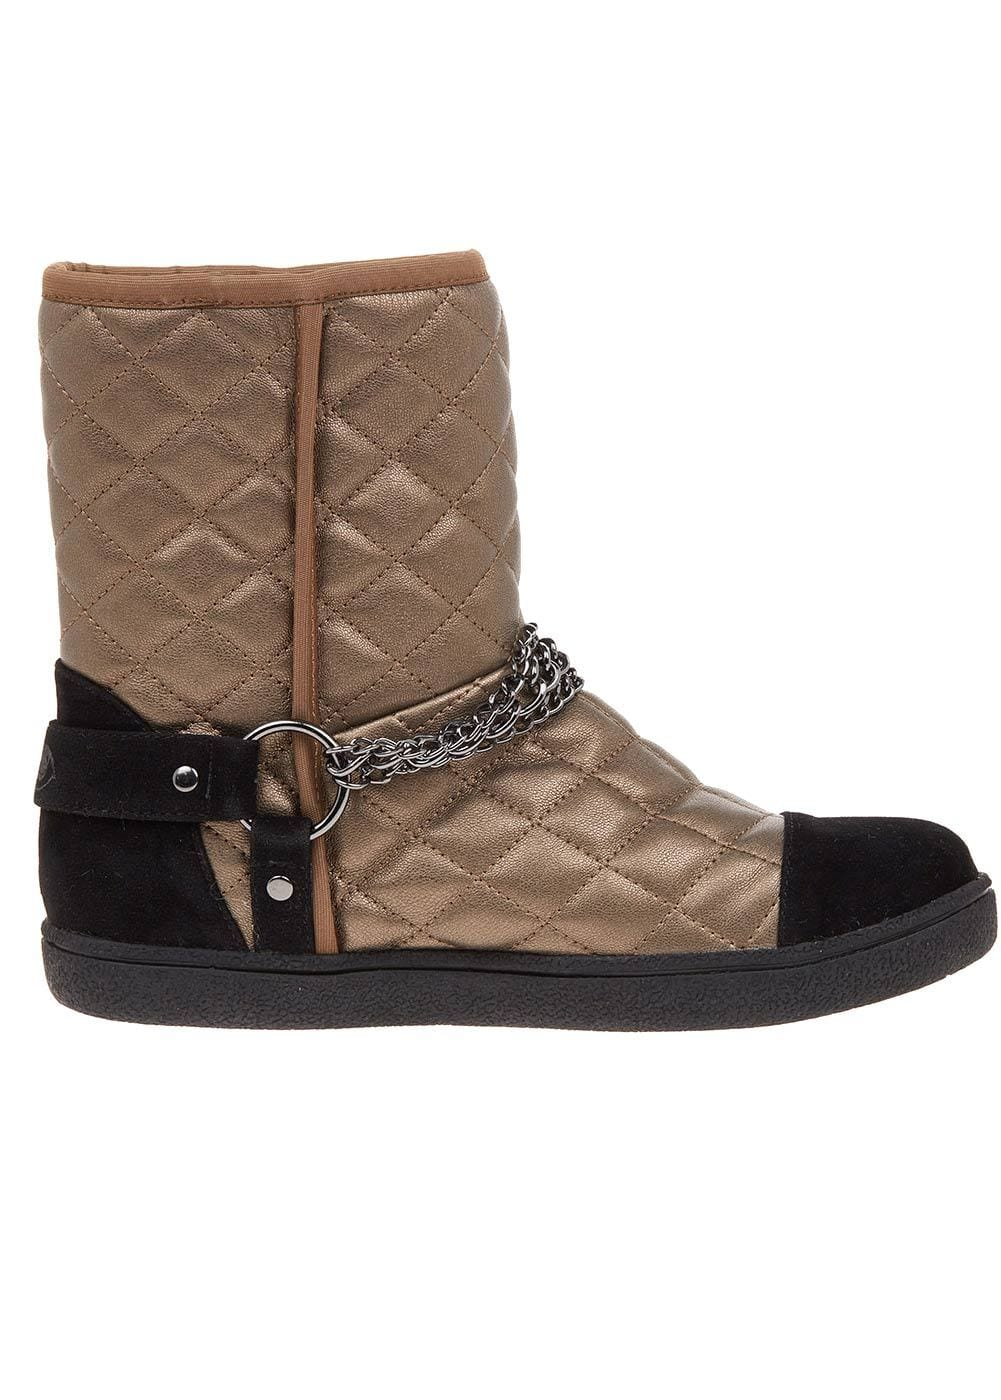 TeenzShop Bronze Winter Biker Boots With Faux Fur Lining